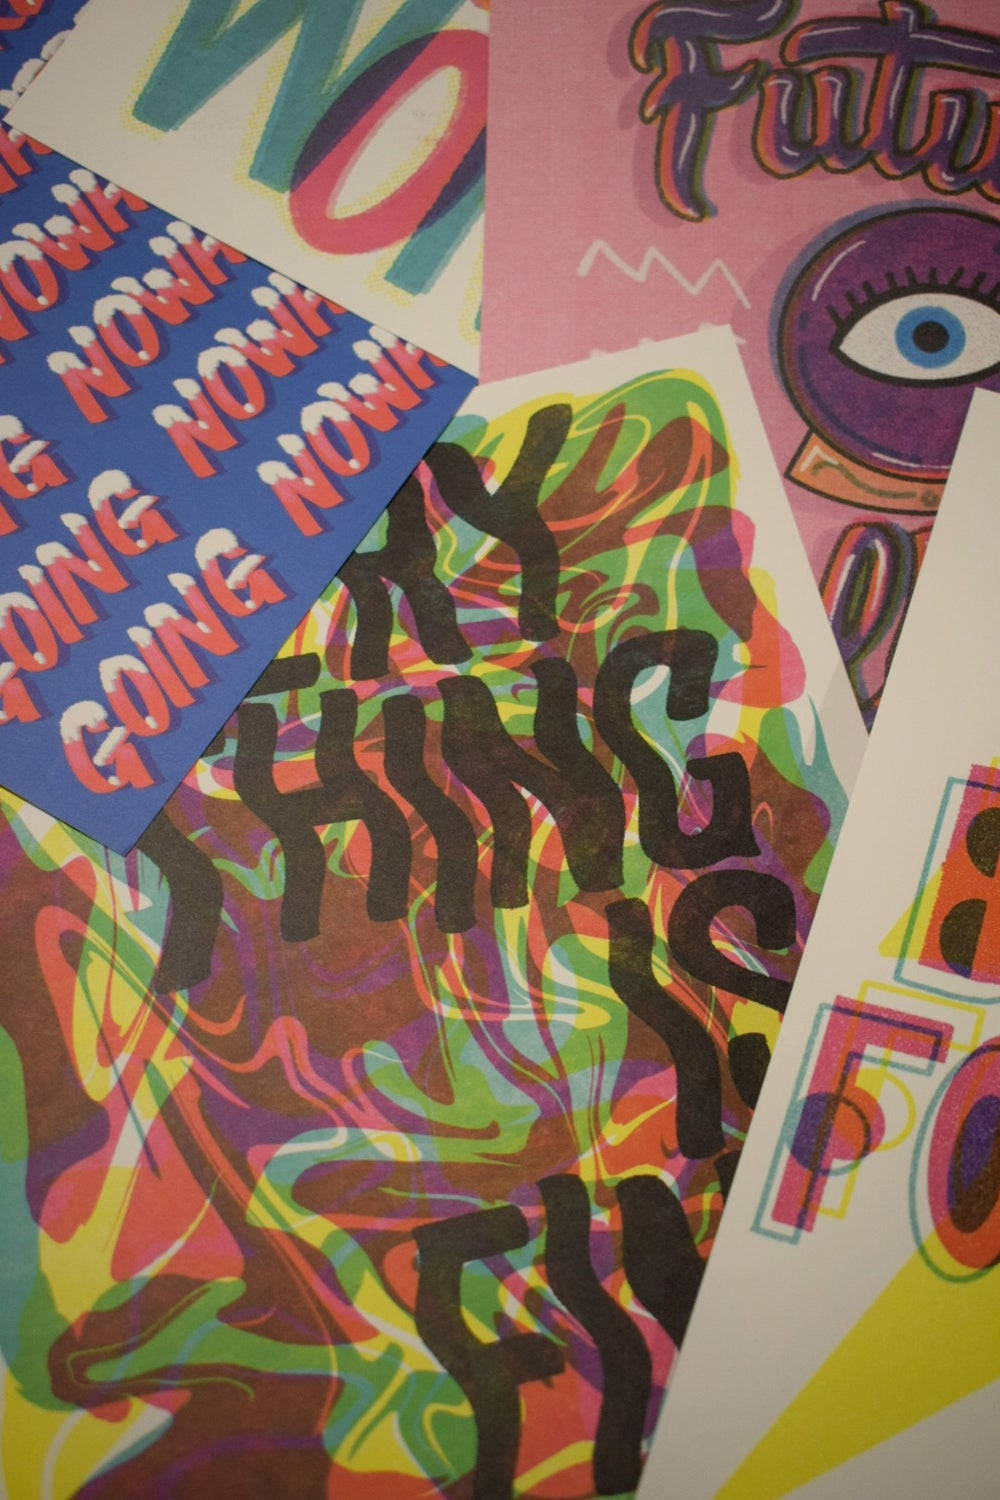 EVERYTHING IS FINE ART PRINT